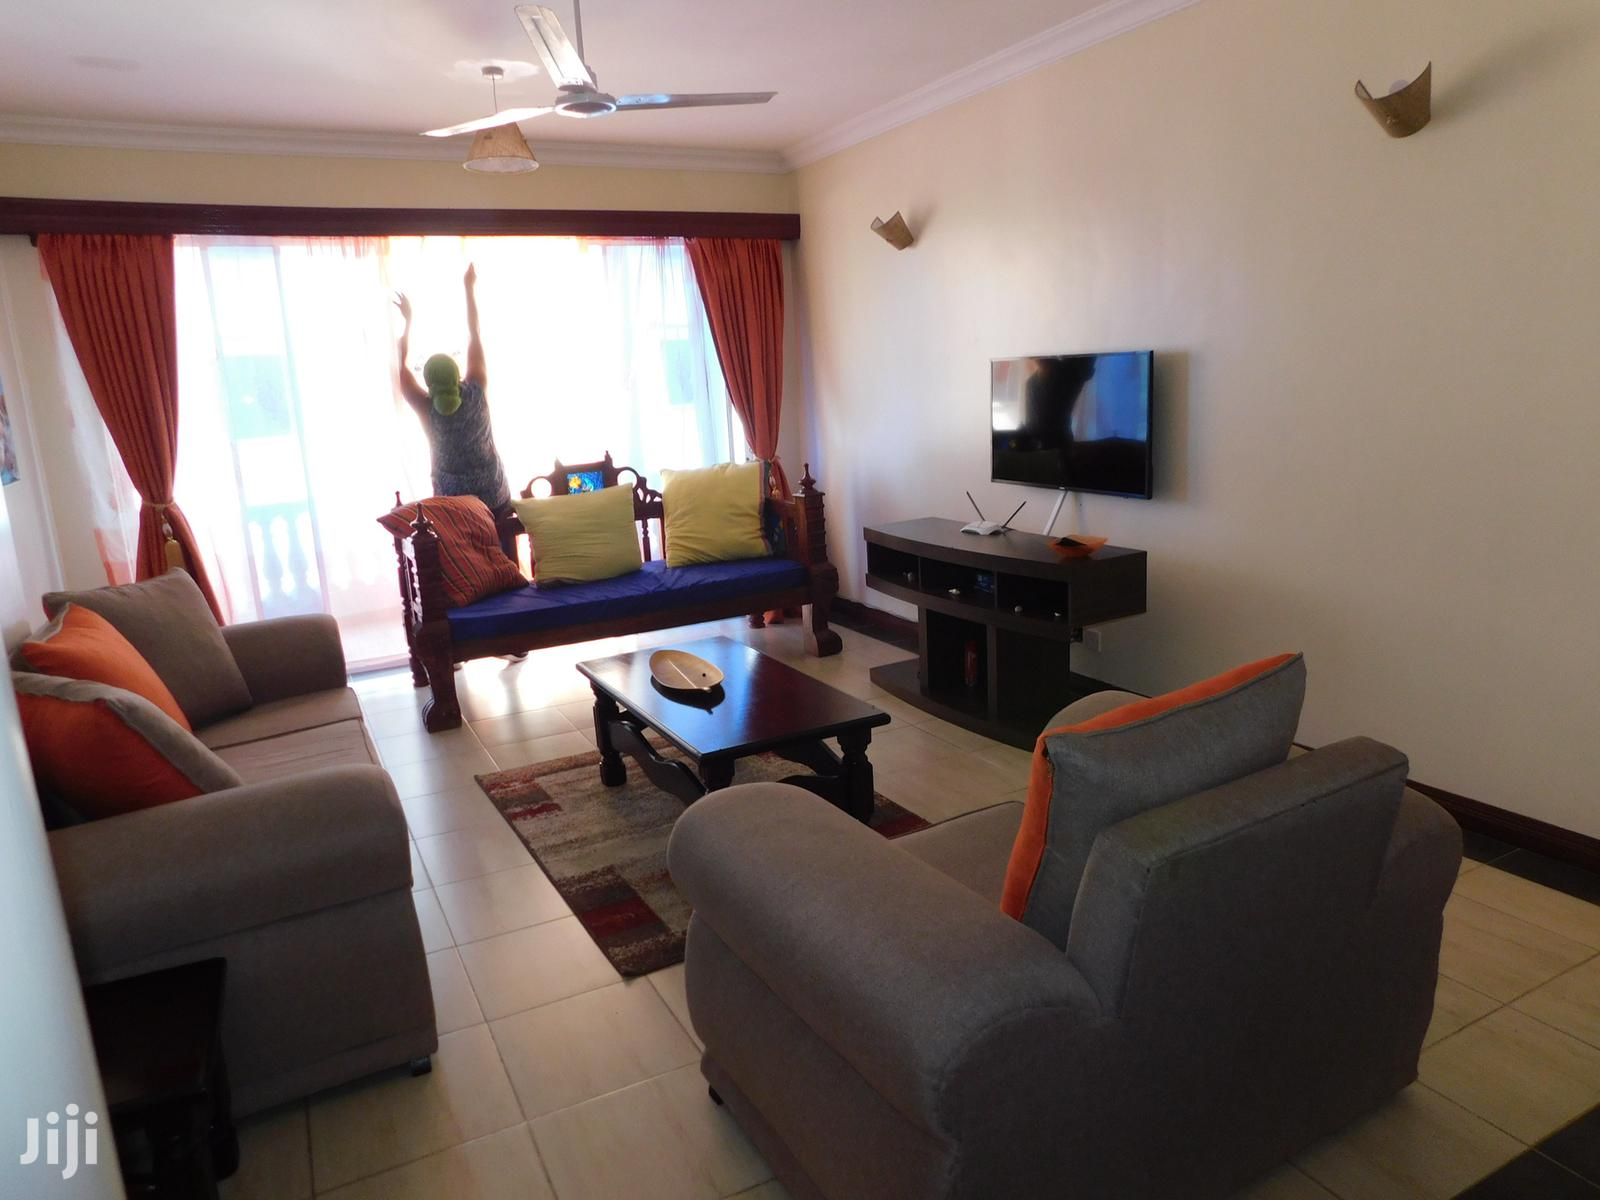 3 Bedroom Fully Furnished Holiday Apartment With Pool, Benford Homes | Short Let for sale in Nyali (Mkomani), Mombasa, Kenya